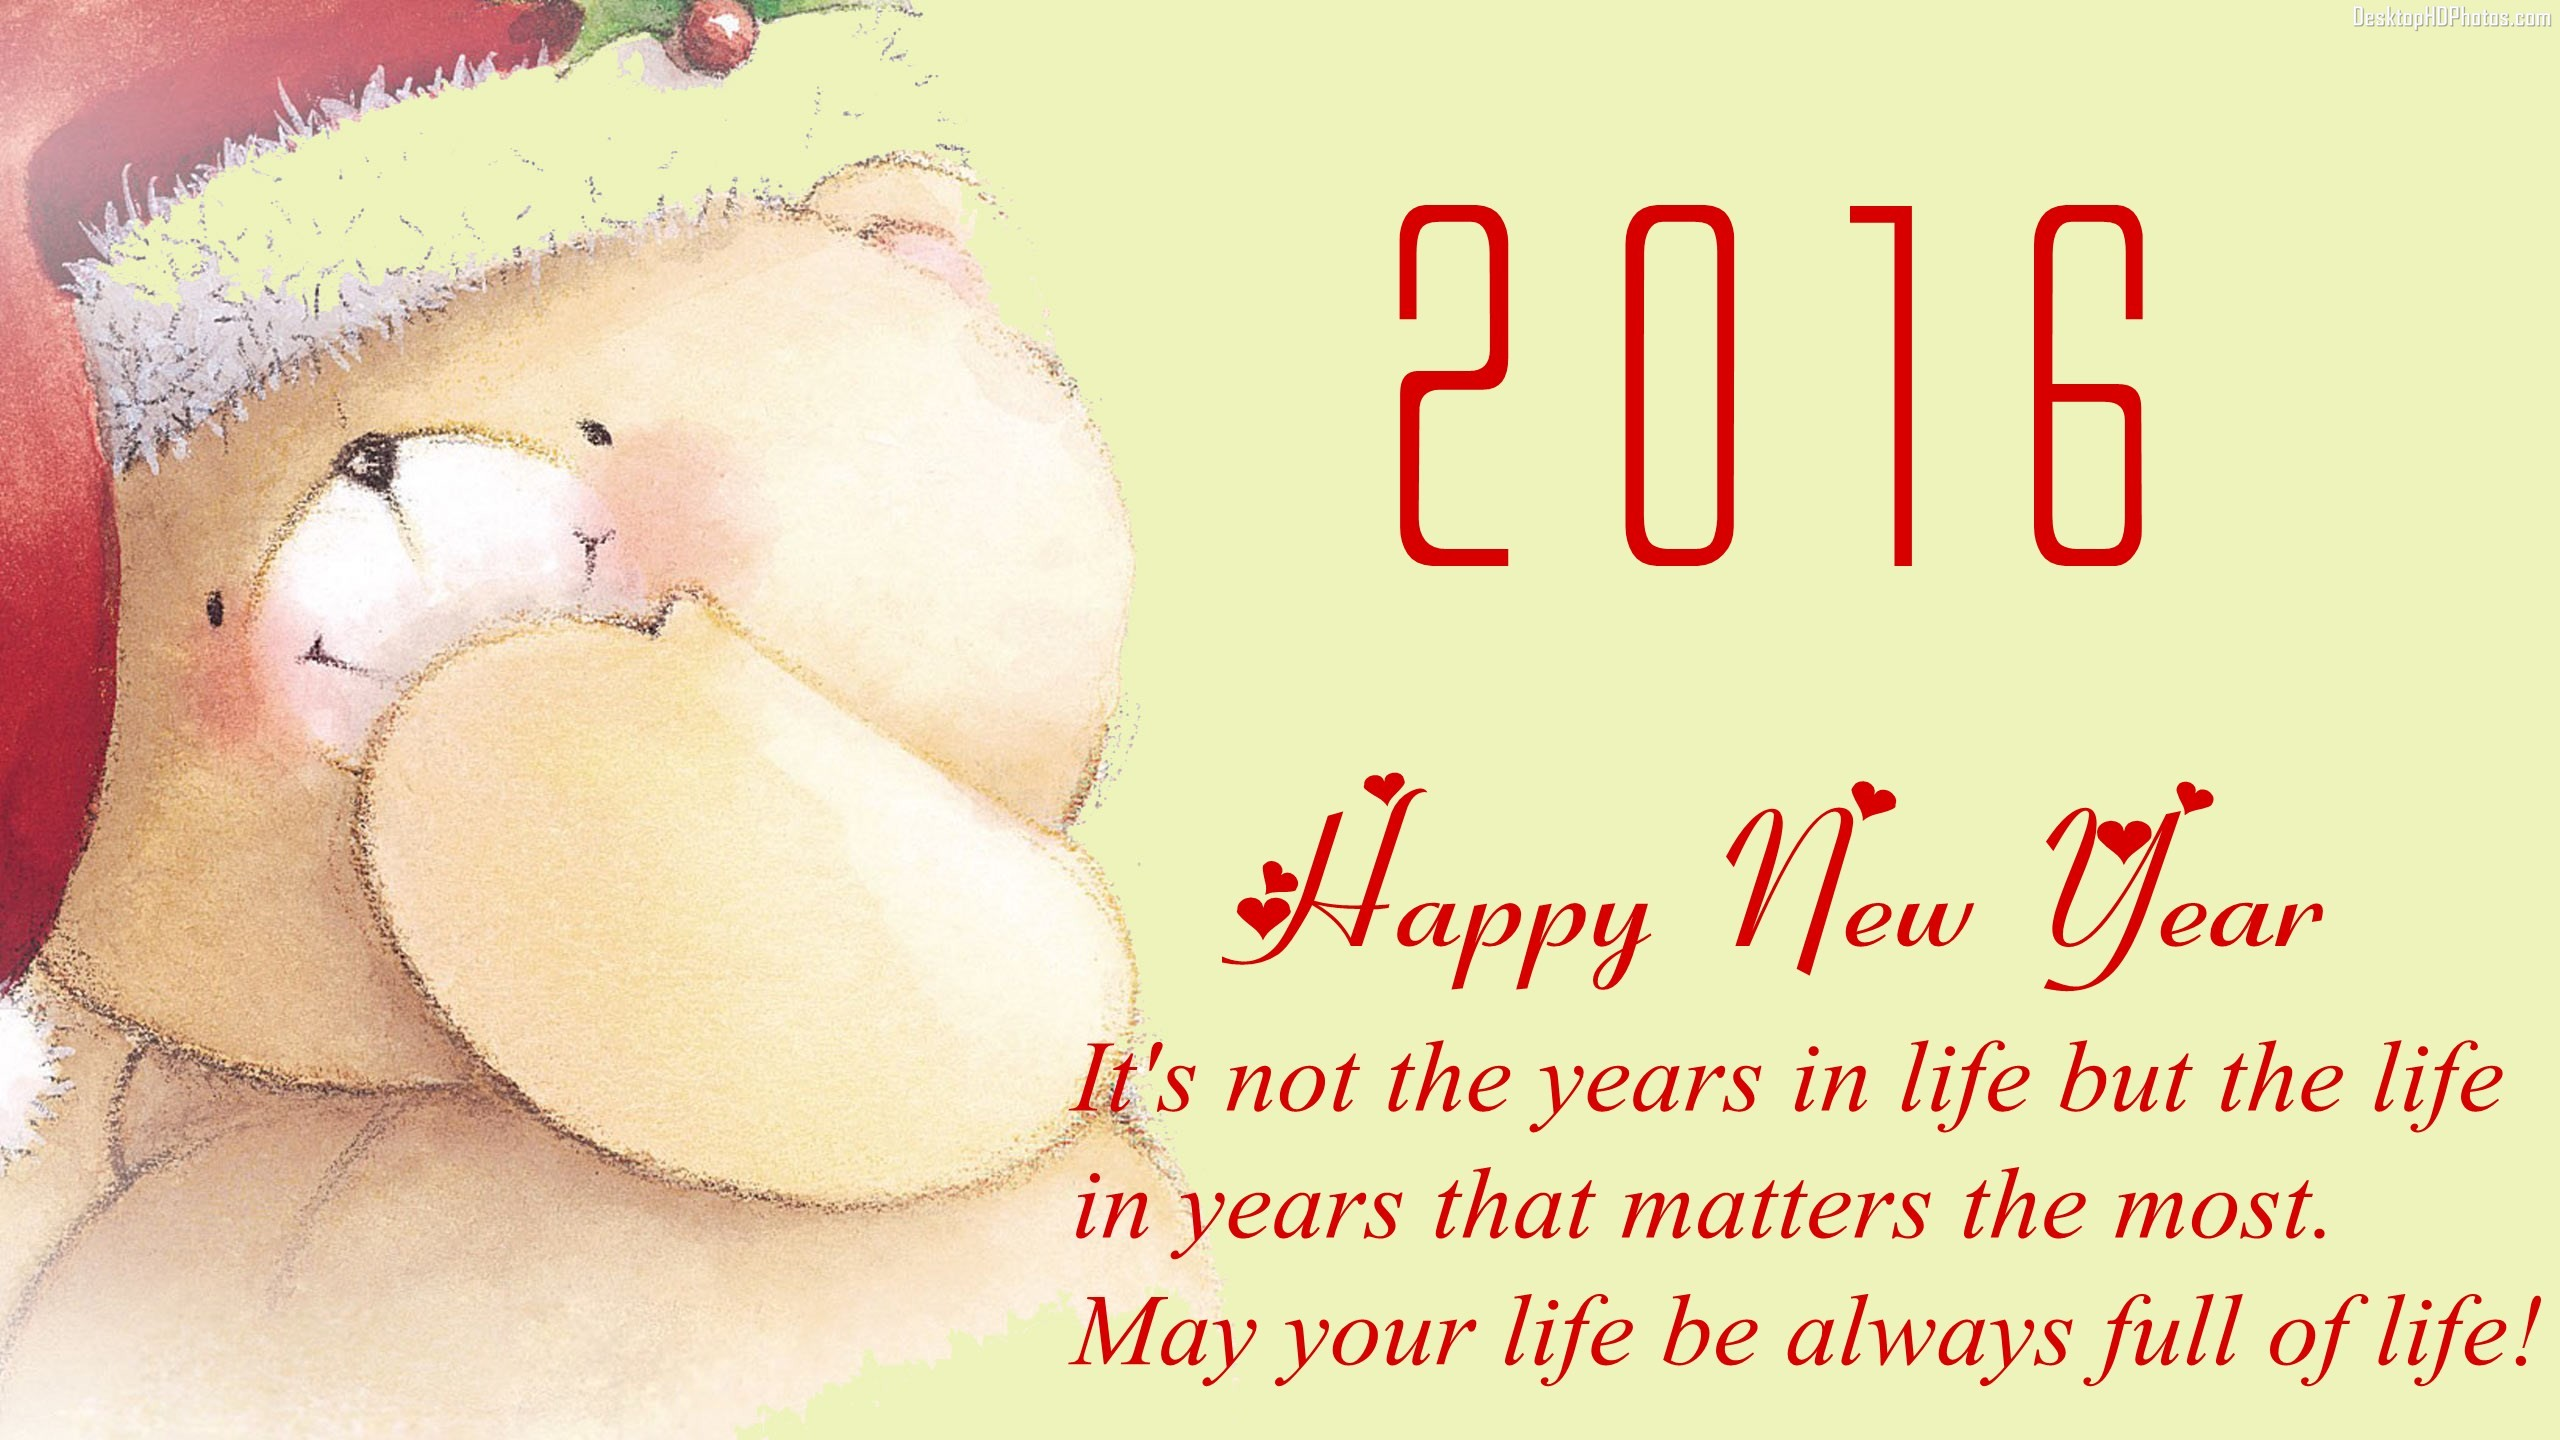 ... Happy New Year HD Wallpapers Whats app DP Images Photos Collection